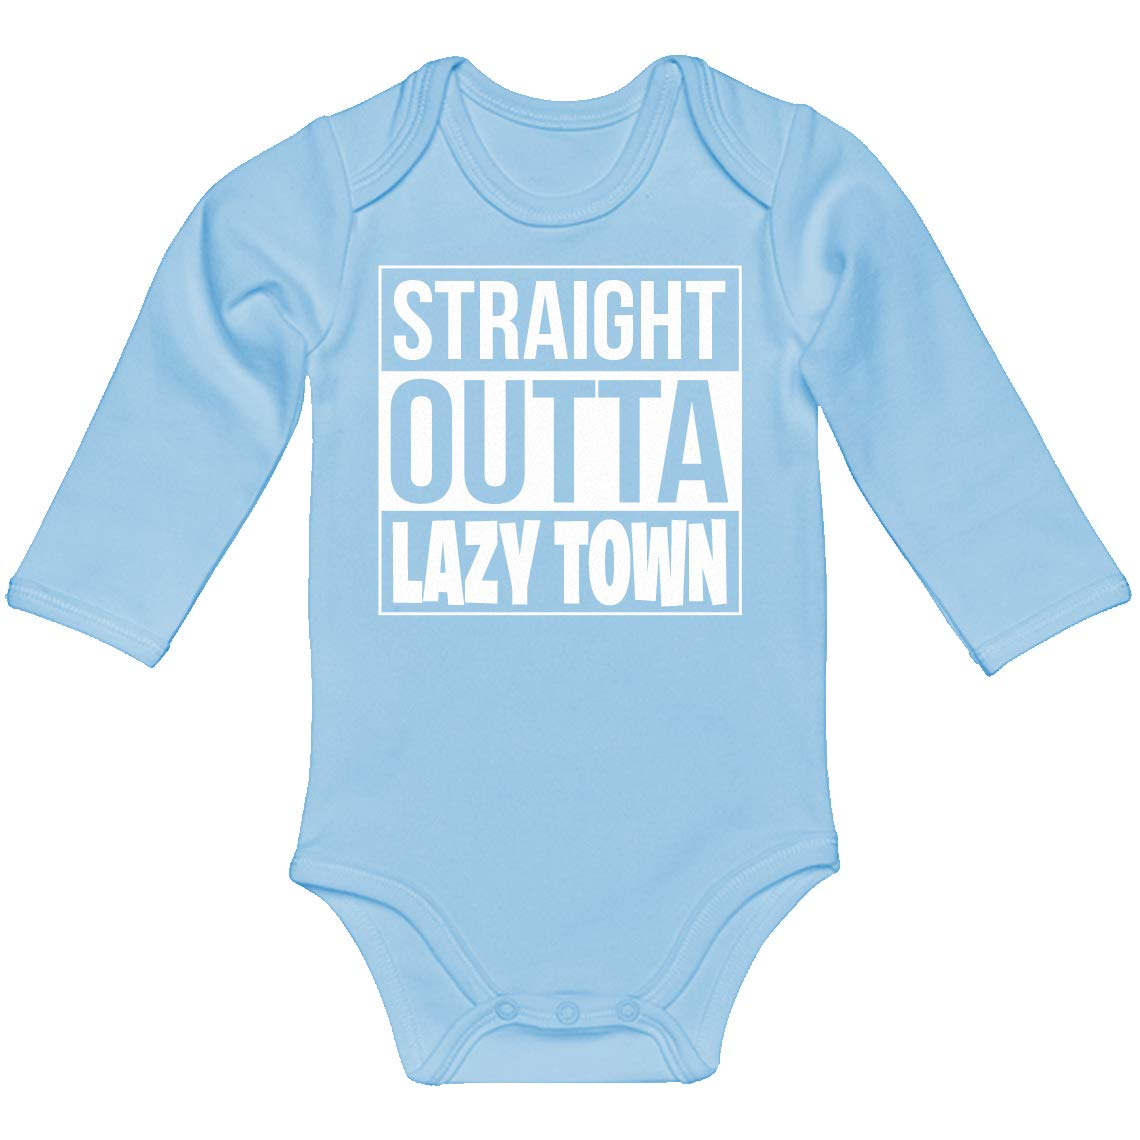 Indica Plateau Baby Romper Straight Outta Lazy Town 100/% Cotton Long Sleeve Infant Bodysuit